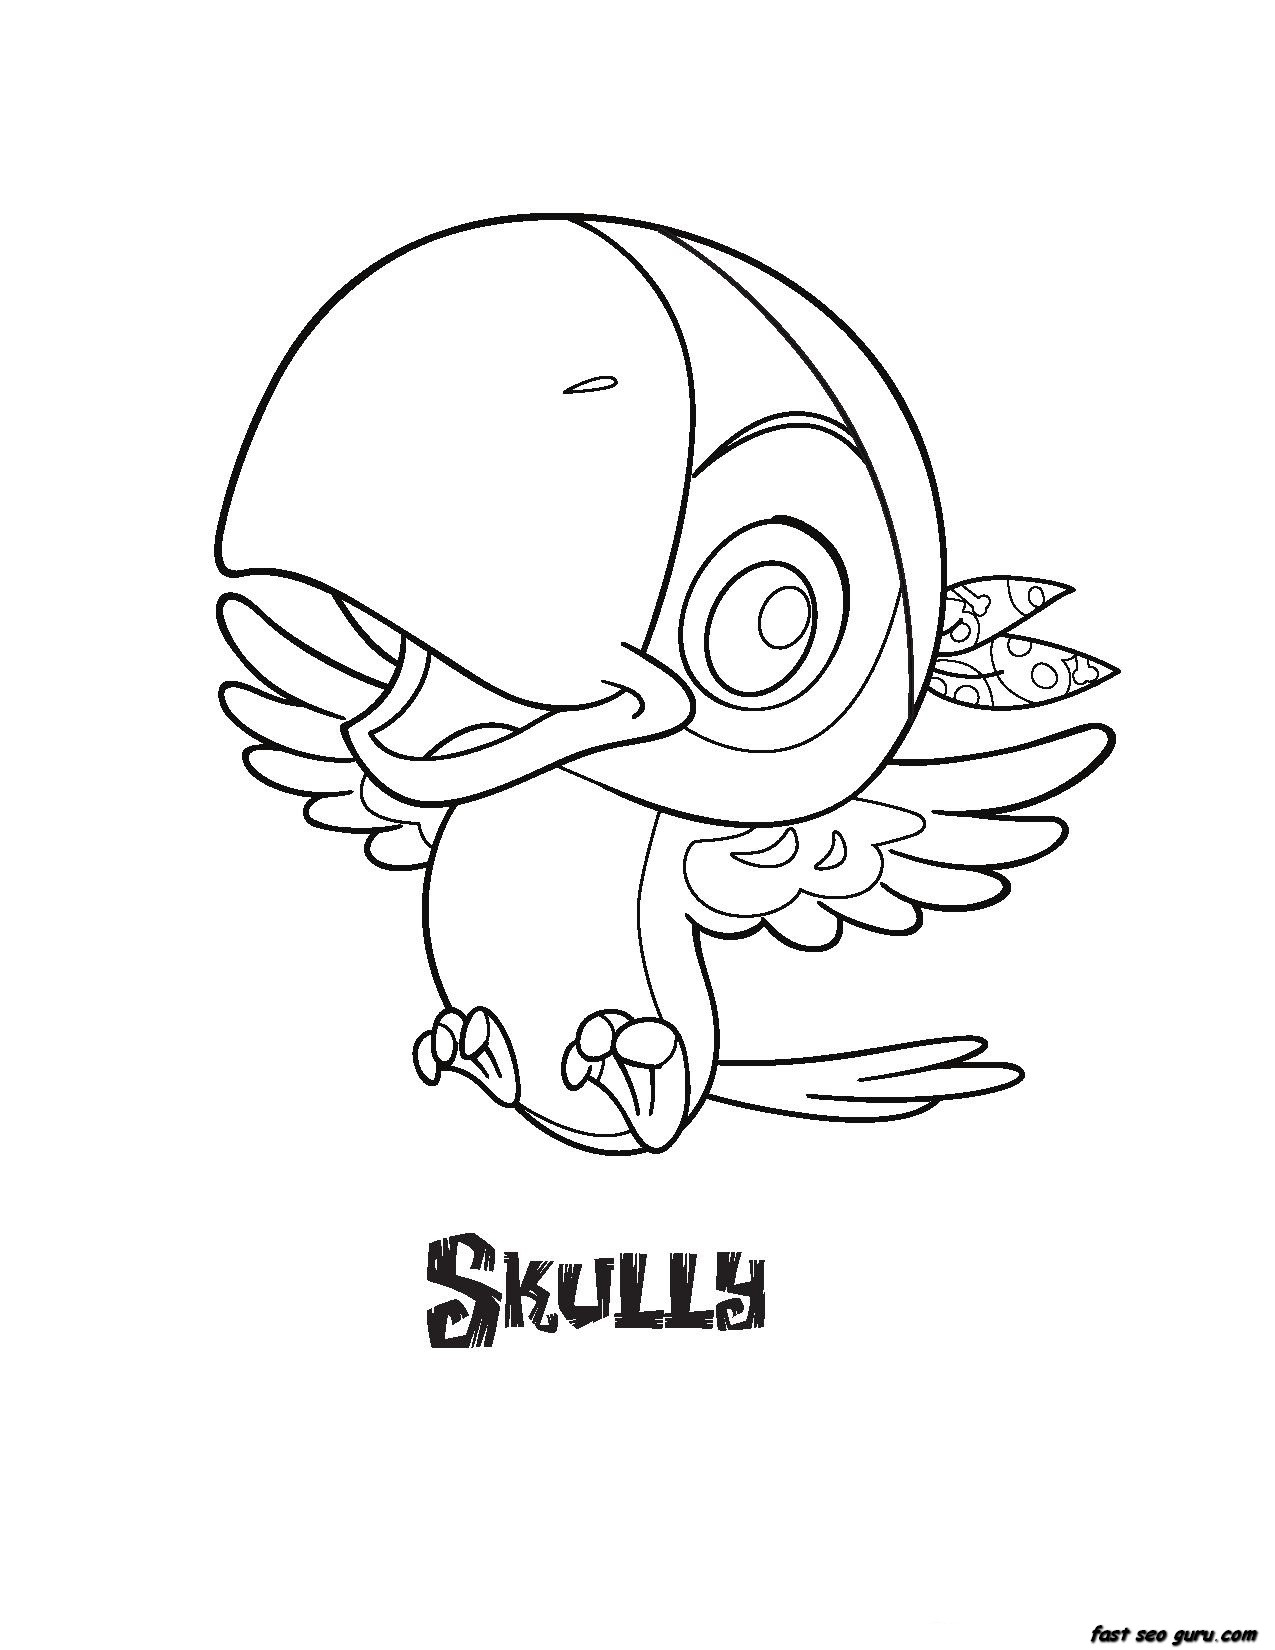 Jake And The Never Land Pirates Skully Coloring Pages Jake And The Neverland Coloring Pages